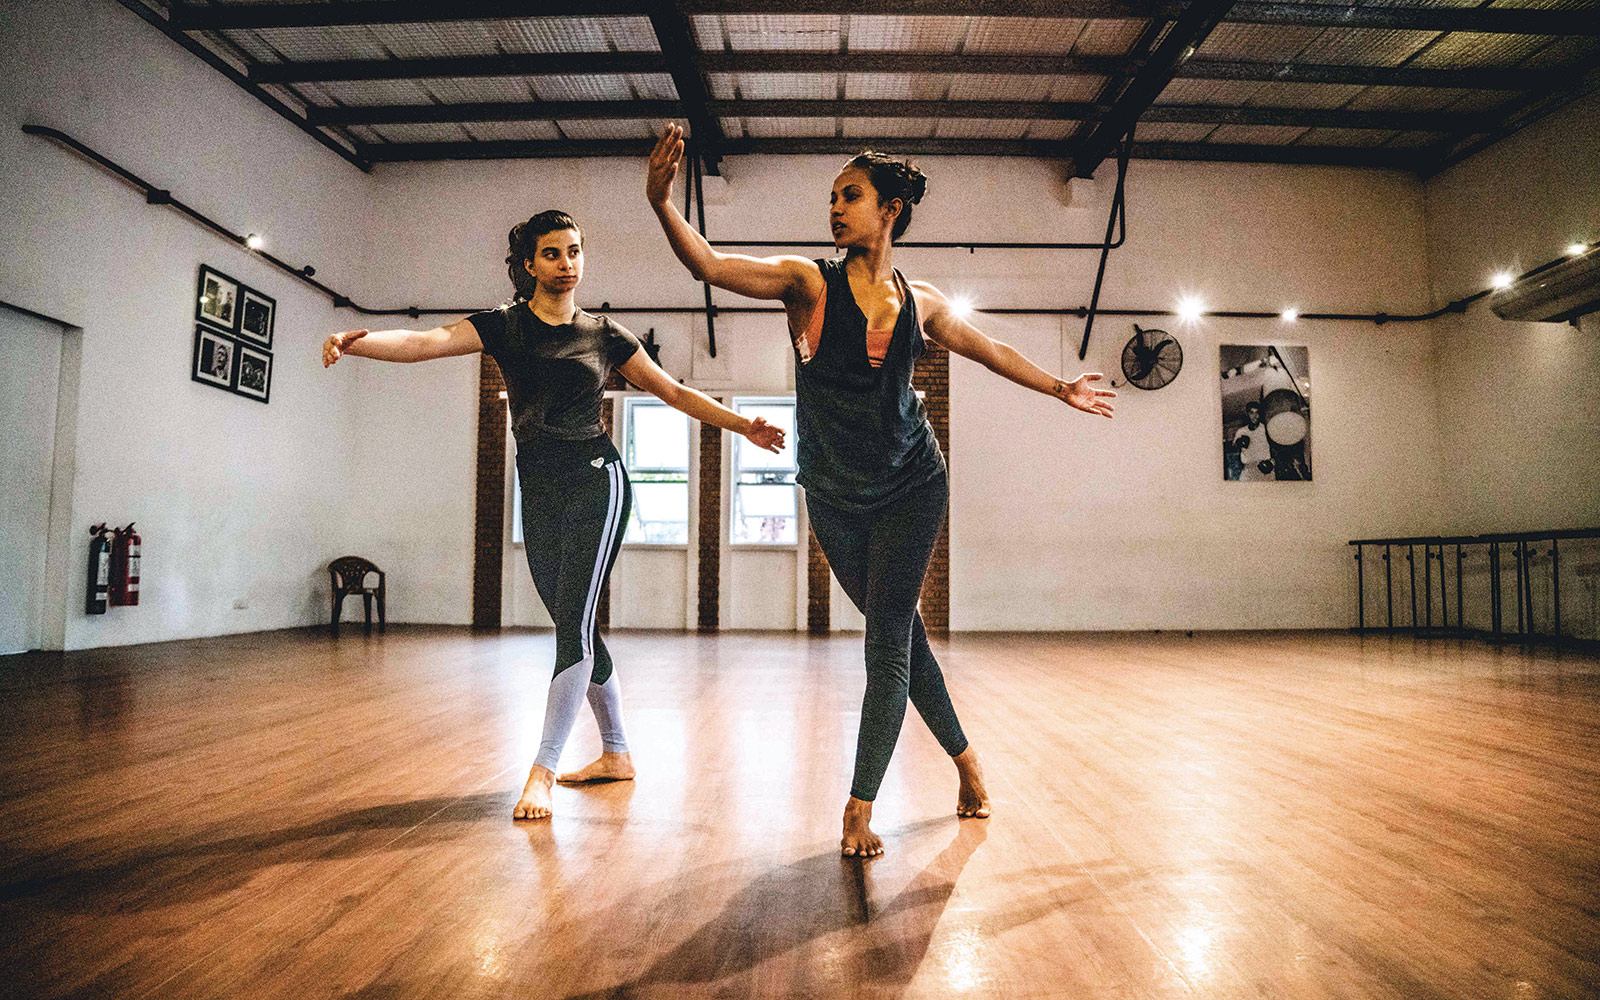 Umeshi Rajeendra works with a student at Mesh Academy in Sri Lanka. The dance school works with students on technique, but also pushes them to consider the ways dance can be used as commentary on social, economic, and political issues.